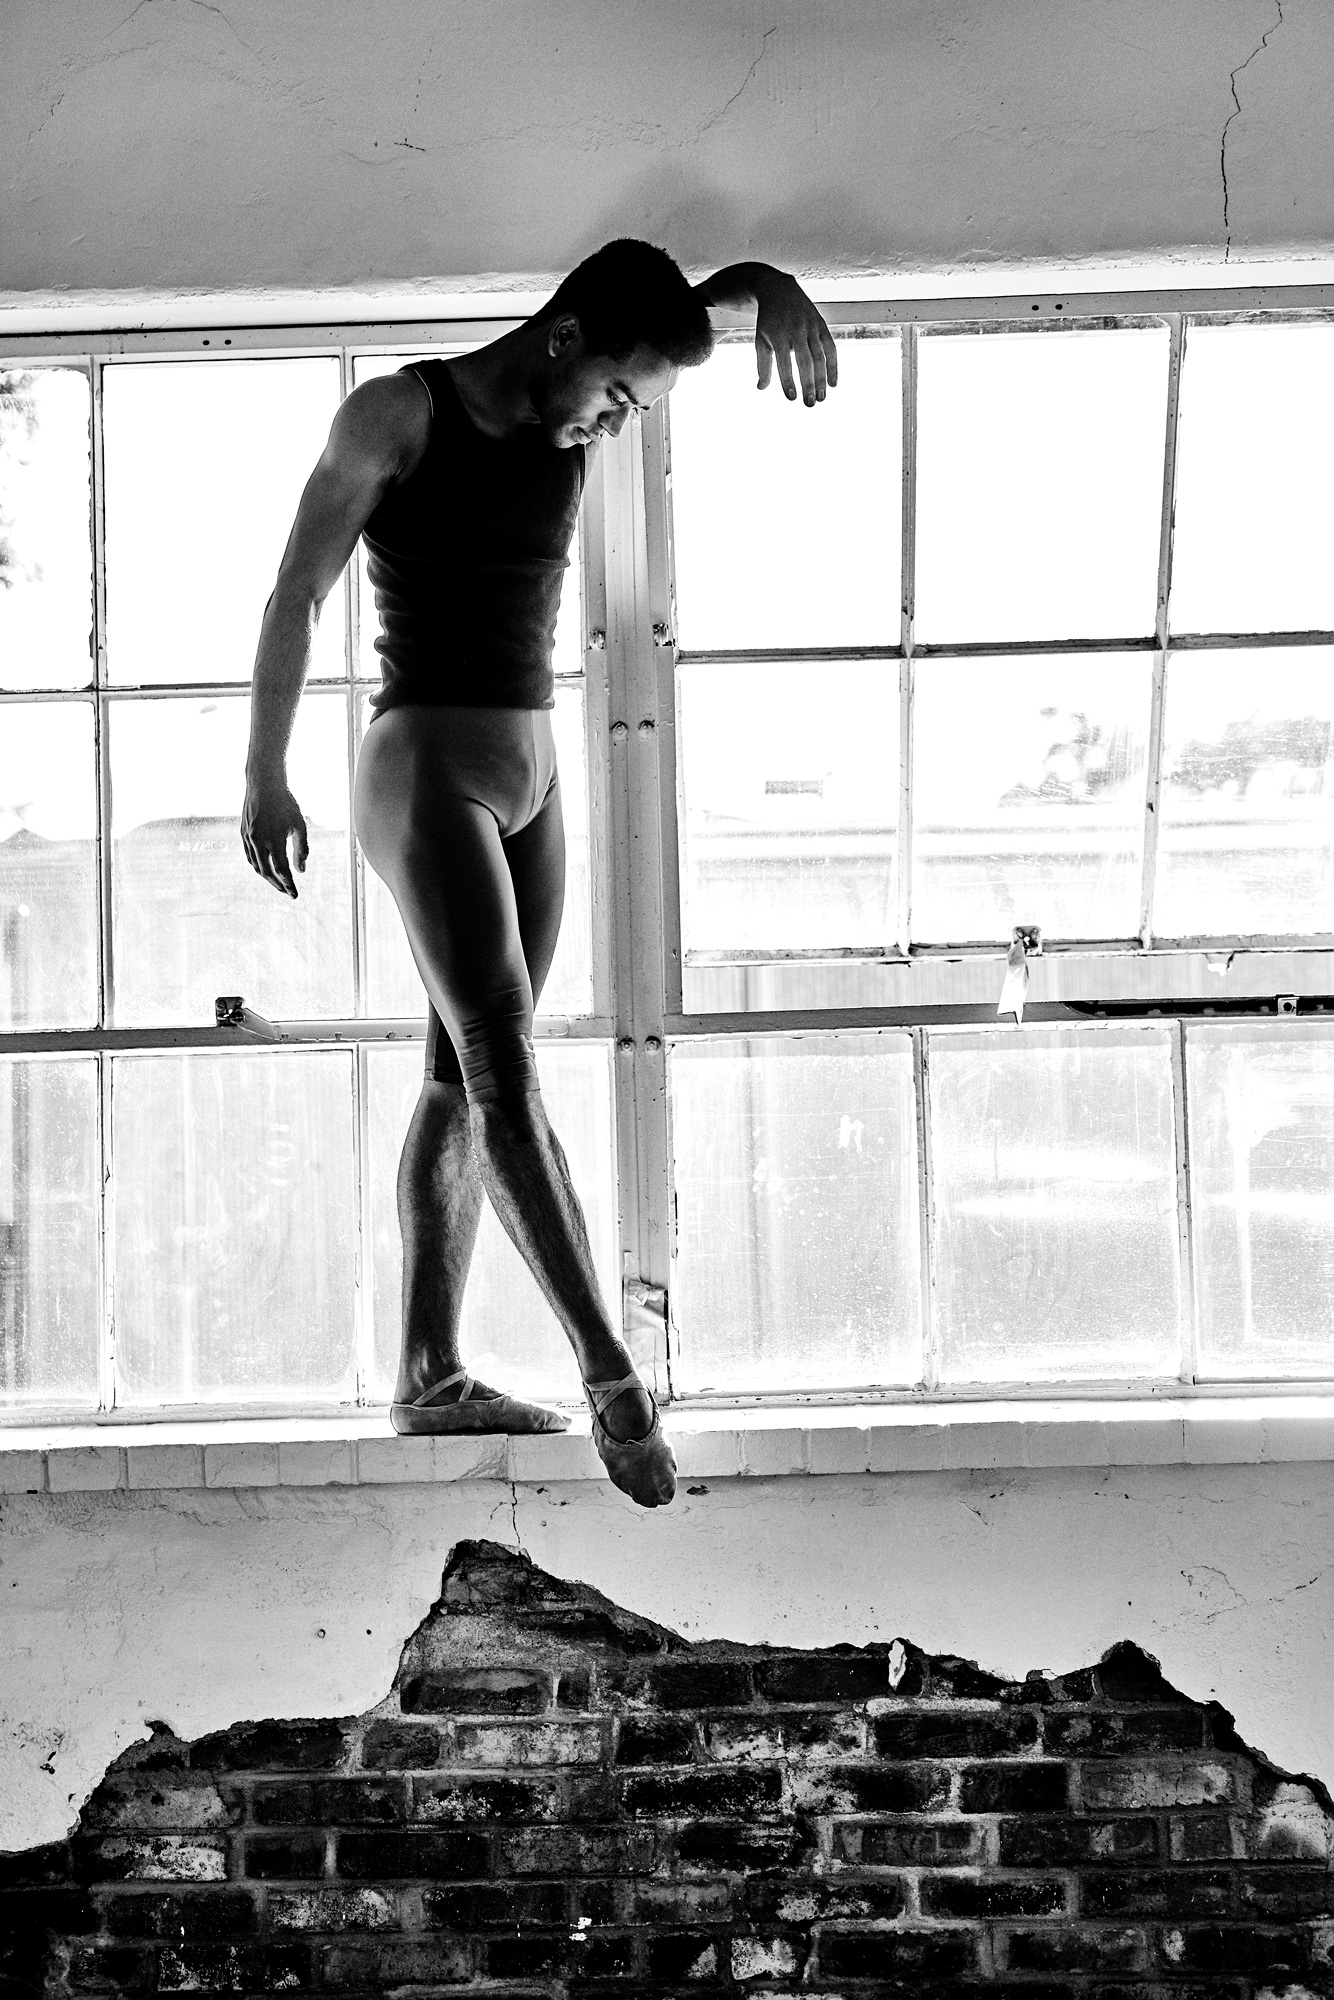 colorado ballet simon zinabu for denver life magazine photographed by jeff nelson